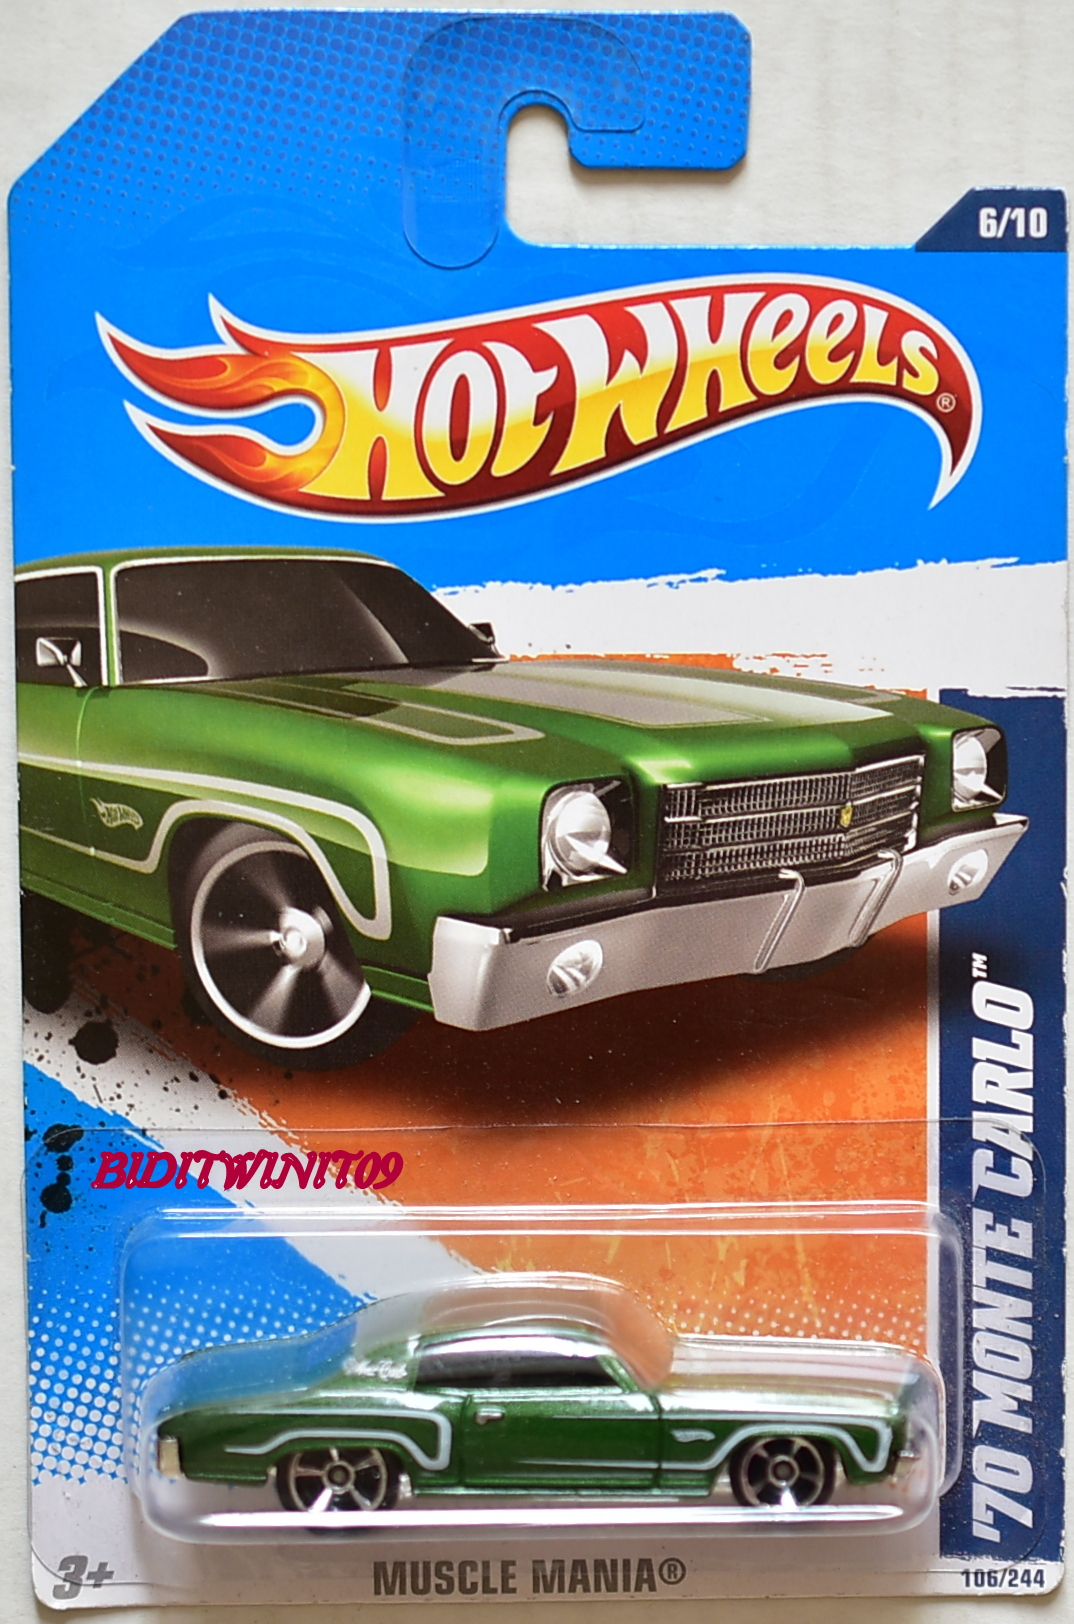 HOT WHEELS 2011 '70 MONTE CARLO #06/10 MUSCLE MANIA